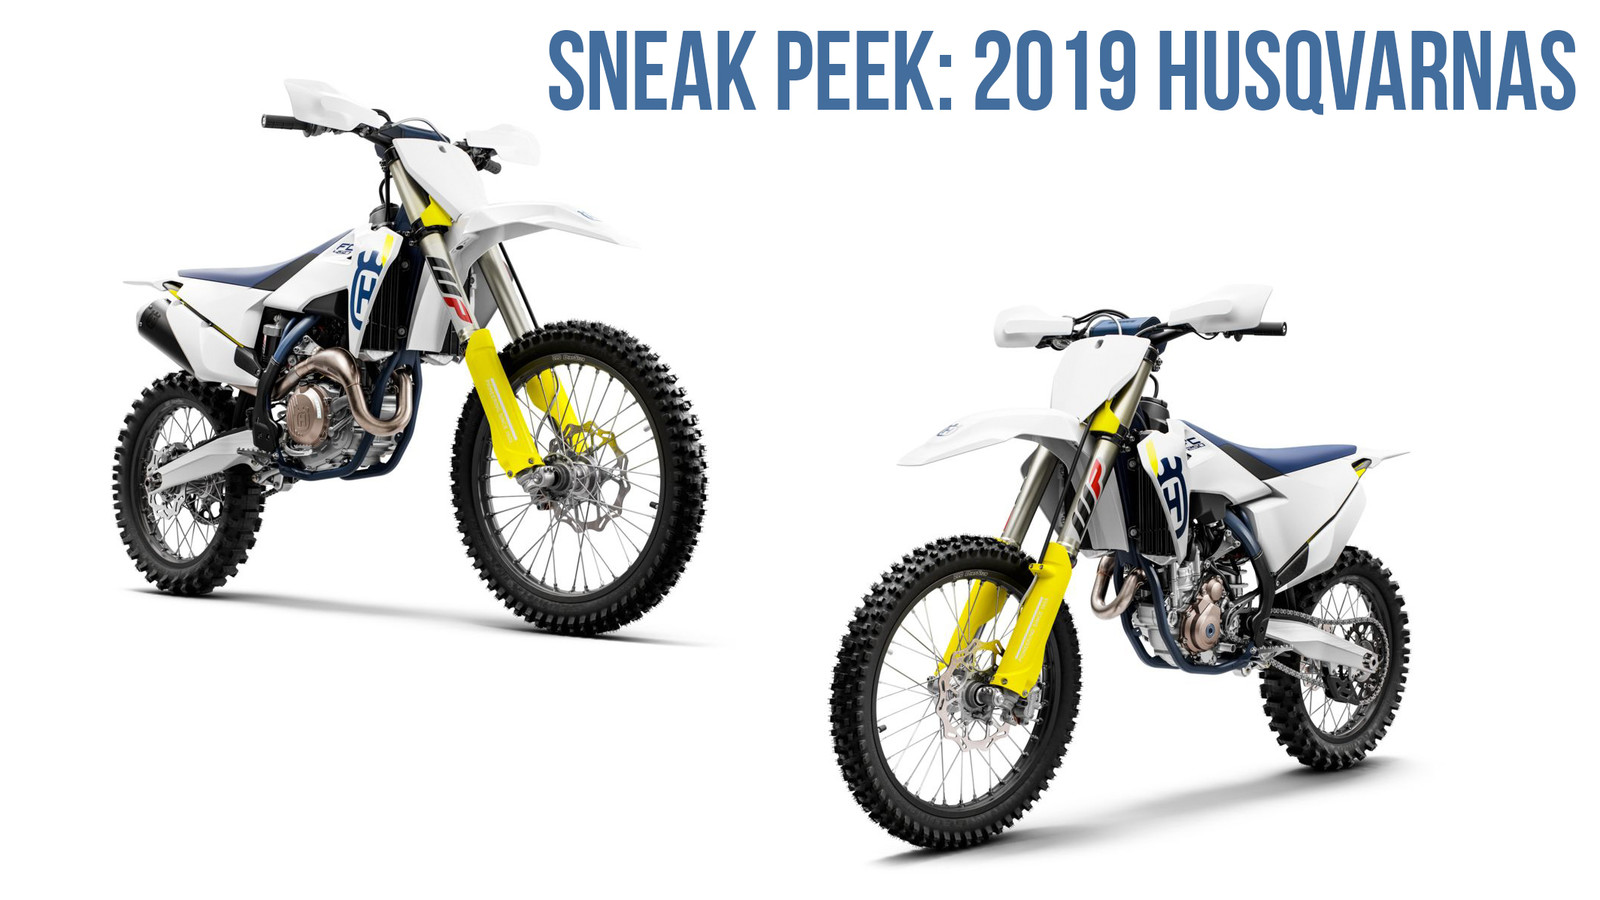 Sneak Peek: 2019 Husqvarna Motocross Models